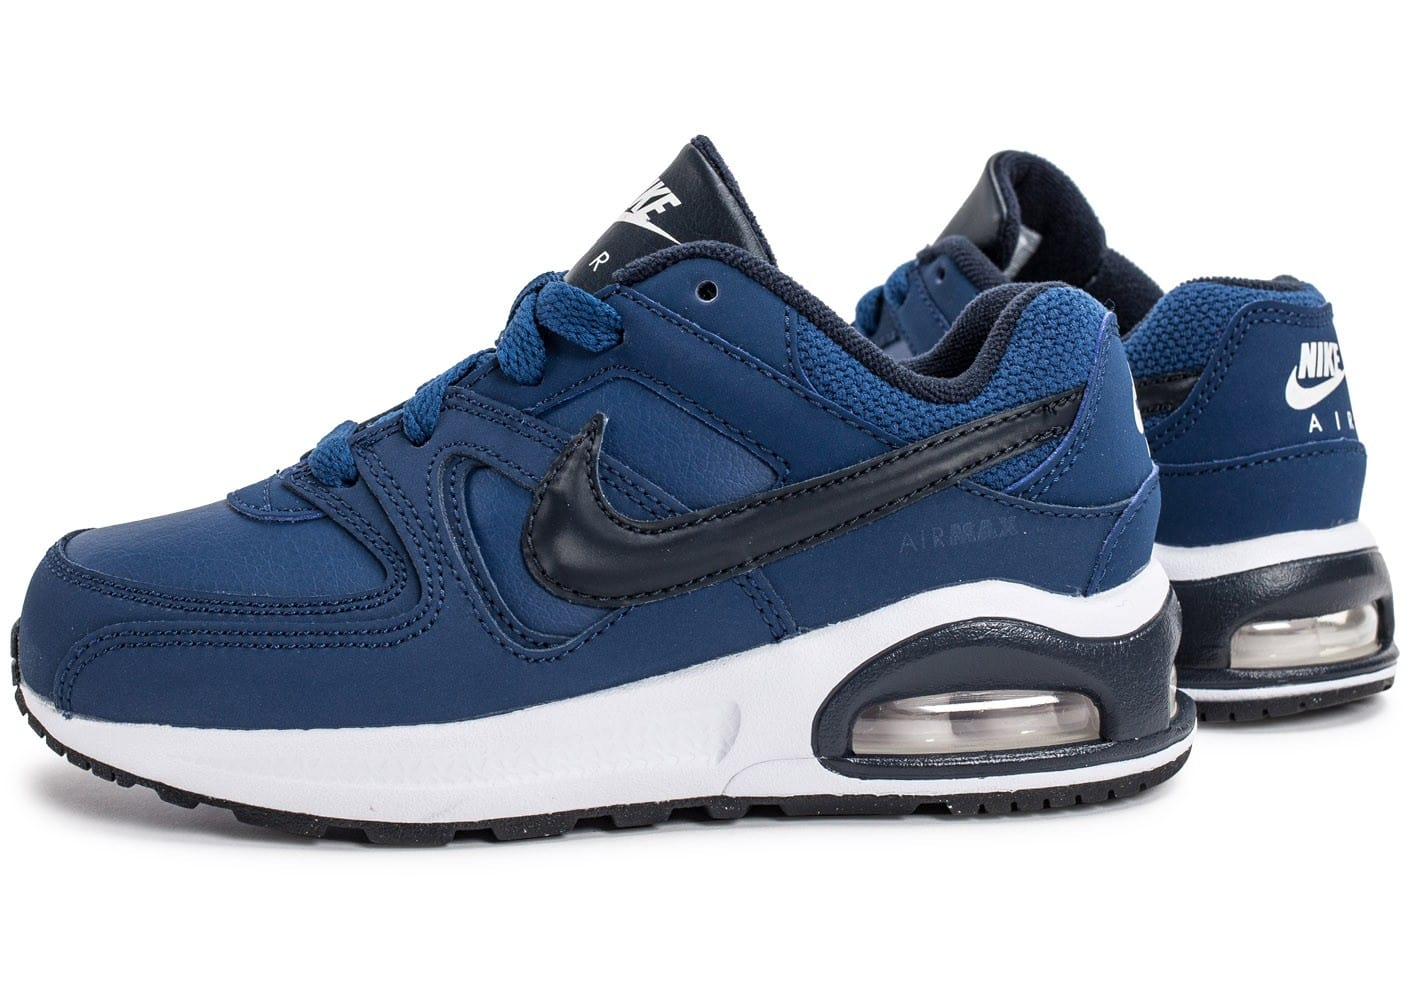 nike air max command flex enfant bleu marine chaussures enfant chausport. Black Bedroom Furniture Sets. Home Design Ideas